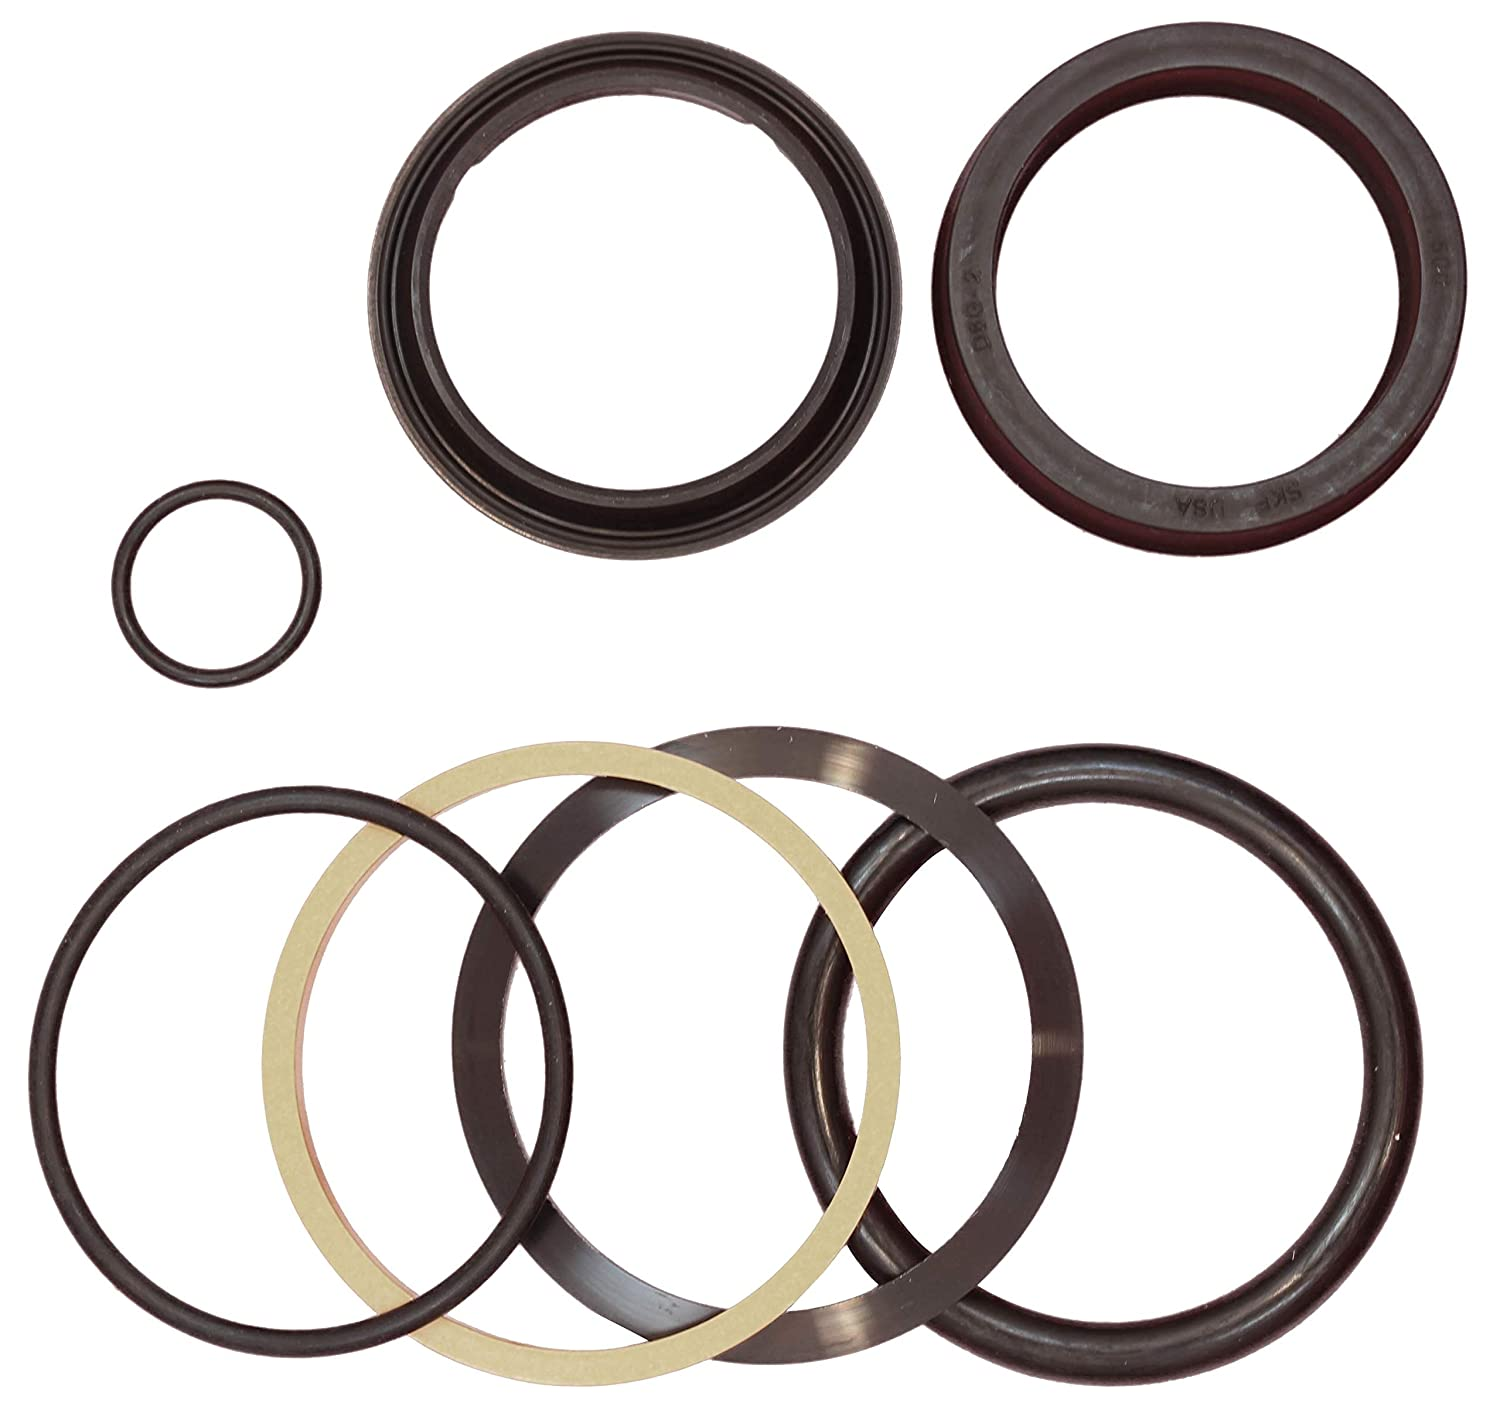 Tornado Heavy Equipment Parts Fits Case G32295 Hydraulic Cylinder Seal Kit